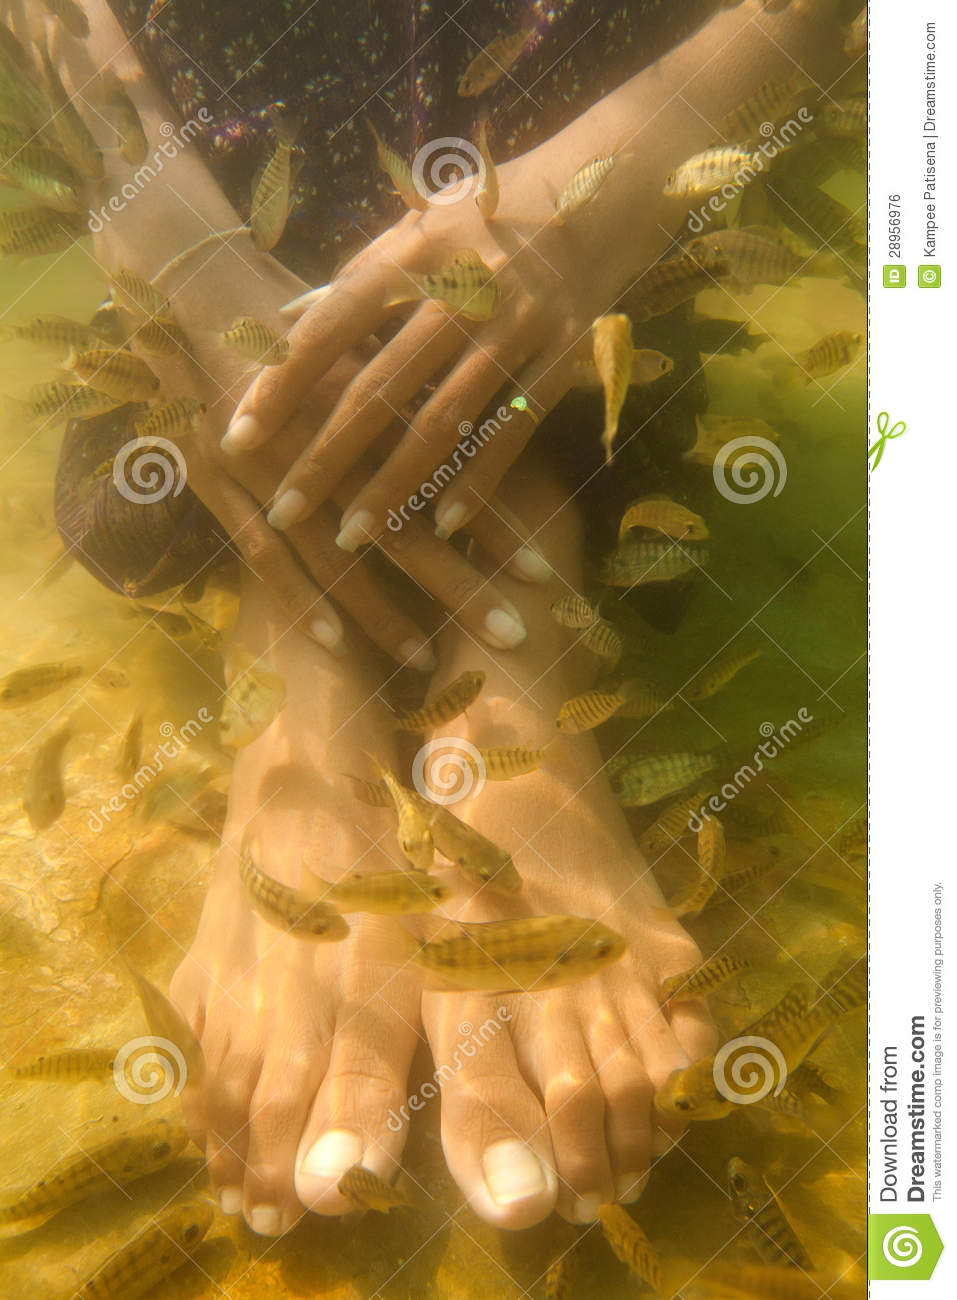 Fish spa pedicure treatment royalty free stock image for Fish pedicure price